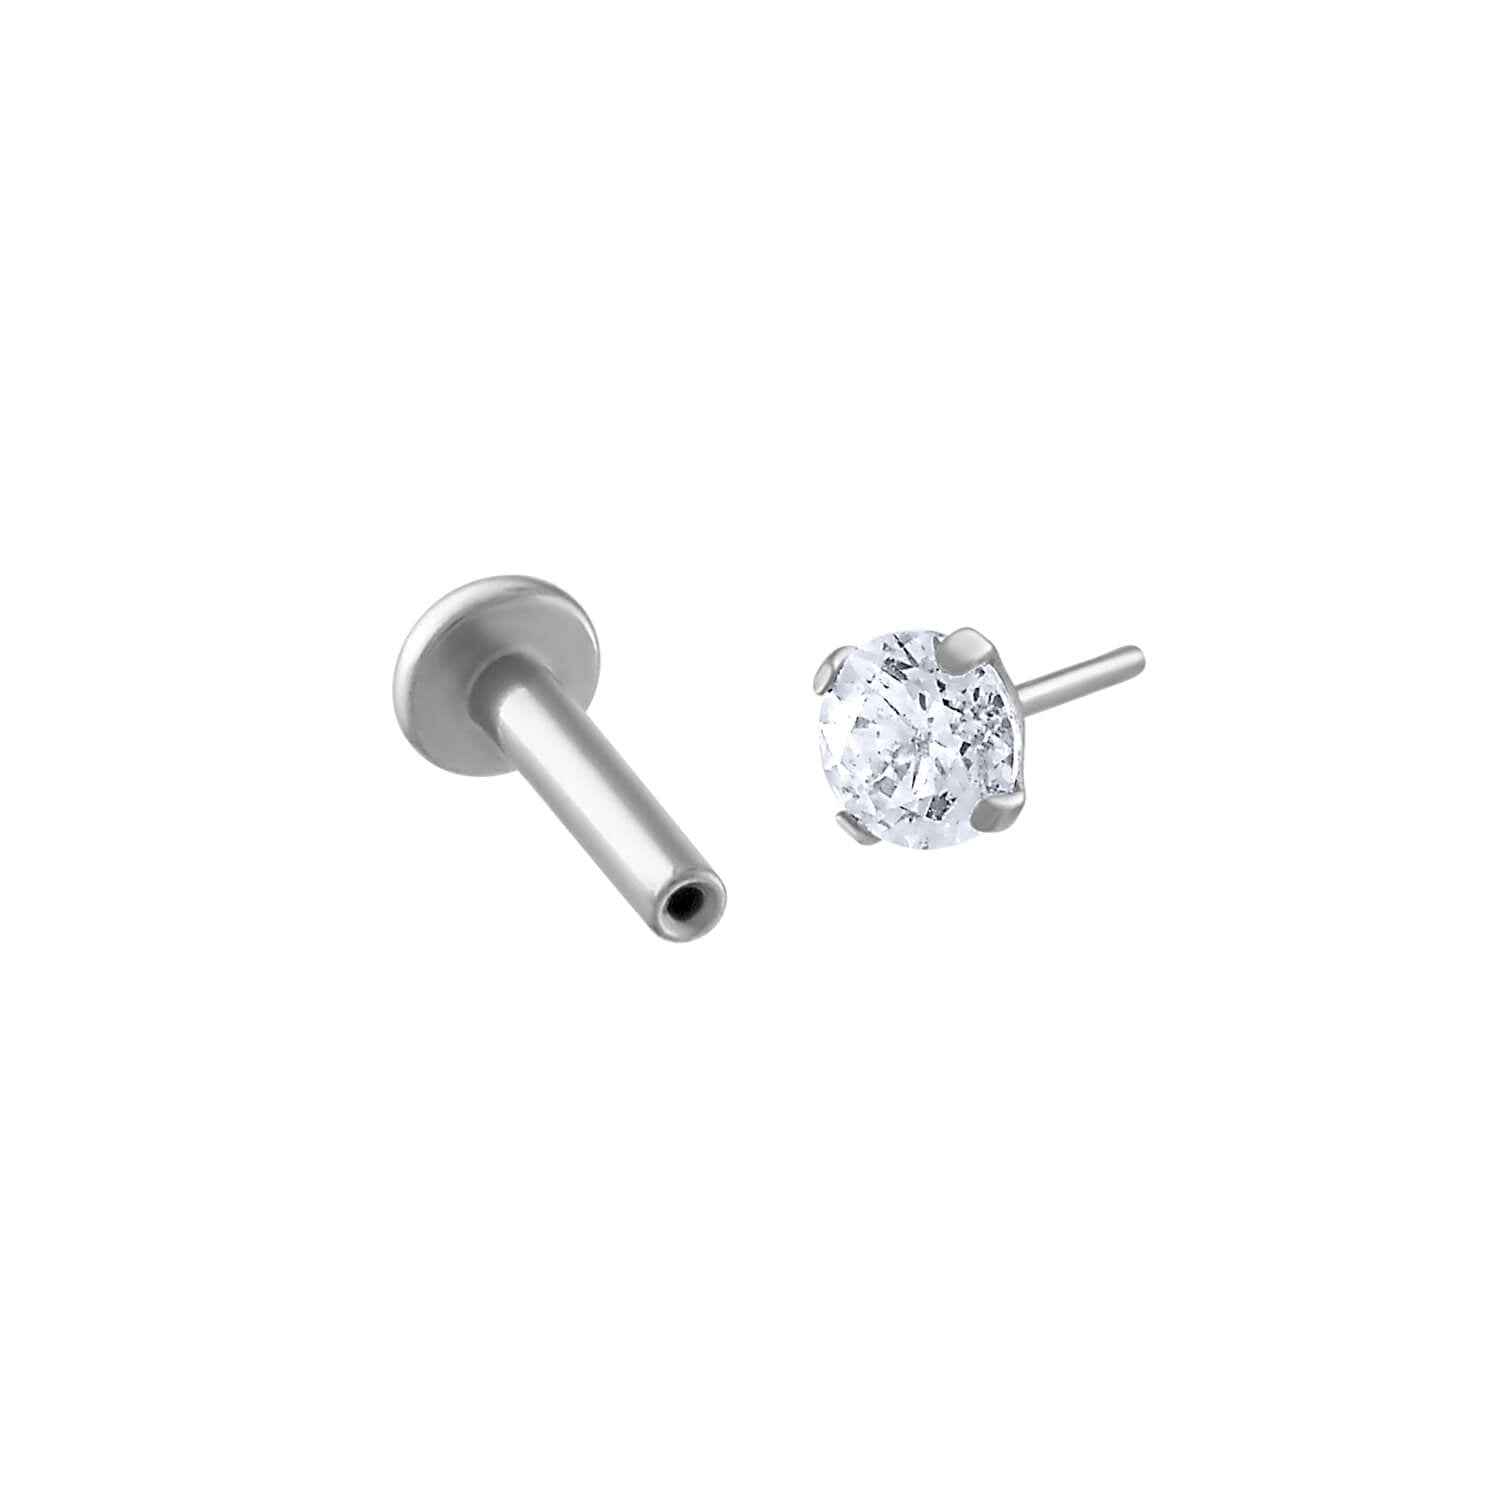 Celestial Crystal Push Pin Flat Back Earring in Silver